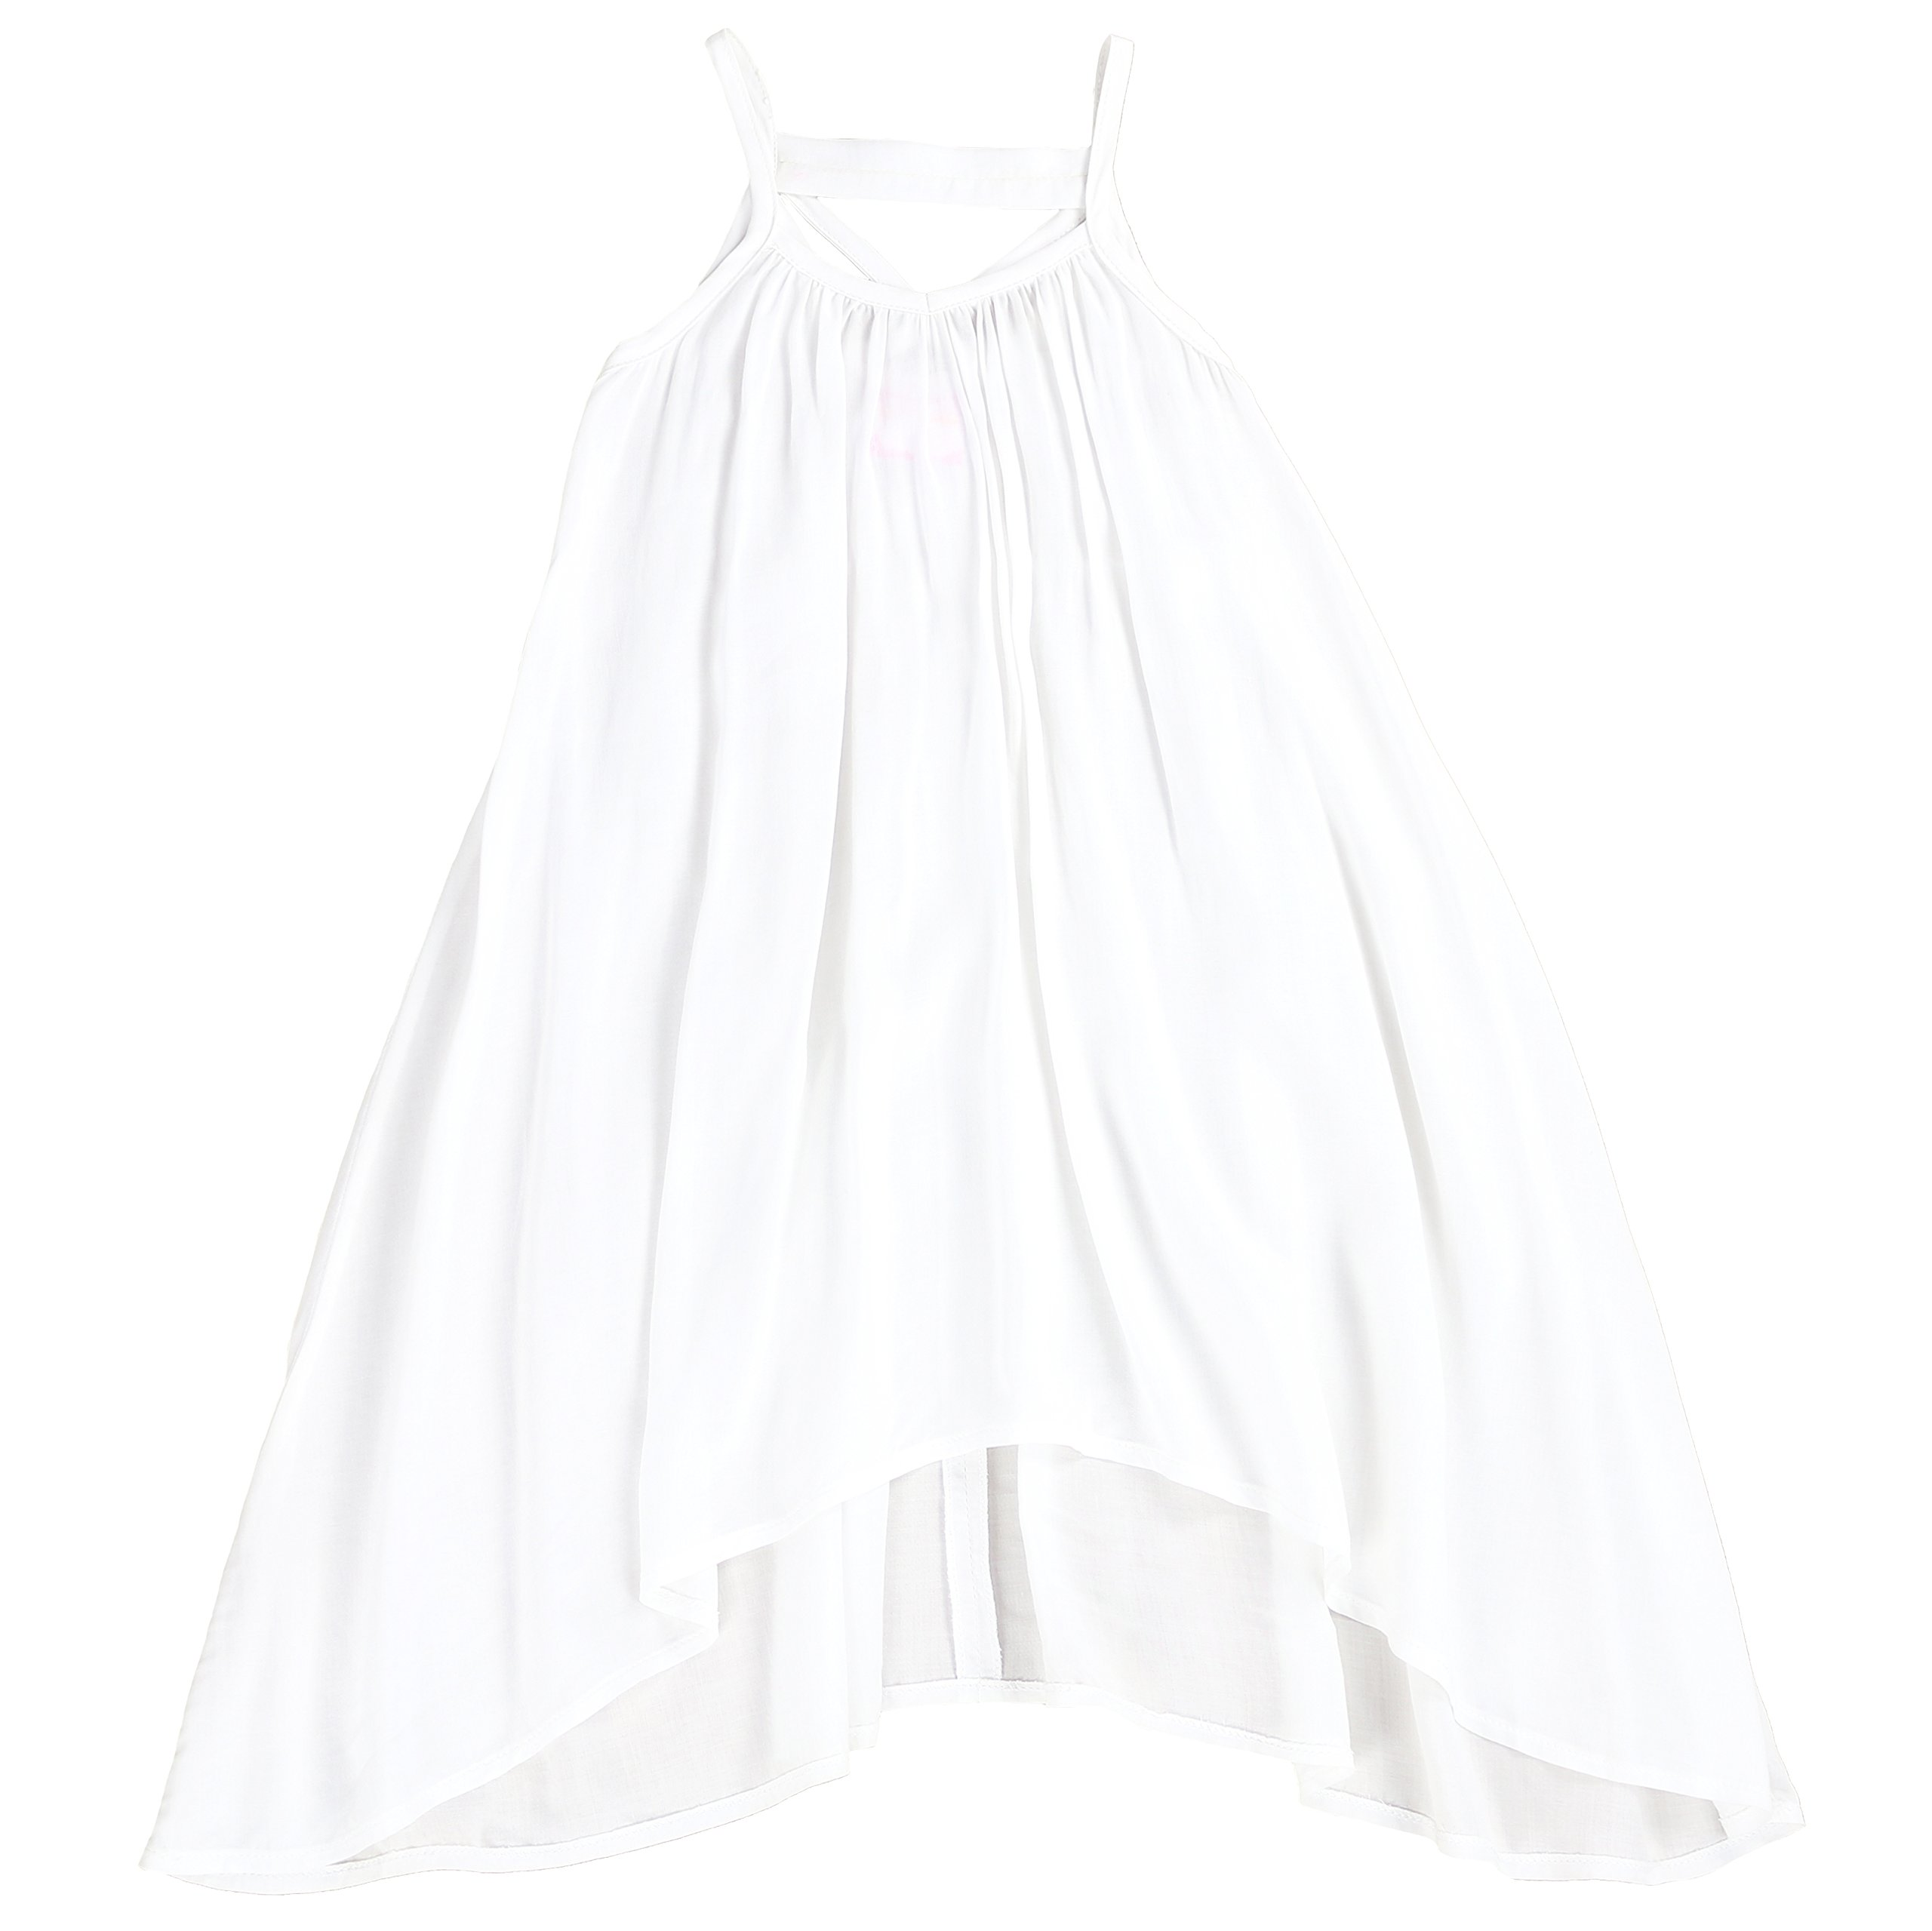 LELEFORKIDS - Toddlers and Girls Light Cotton Asymmetric Swing Away Dress in Beach White 3T